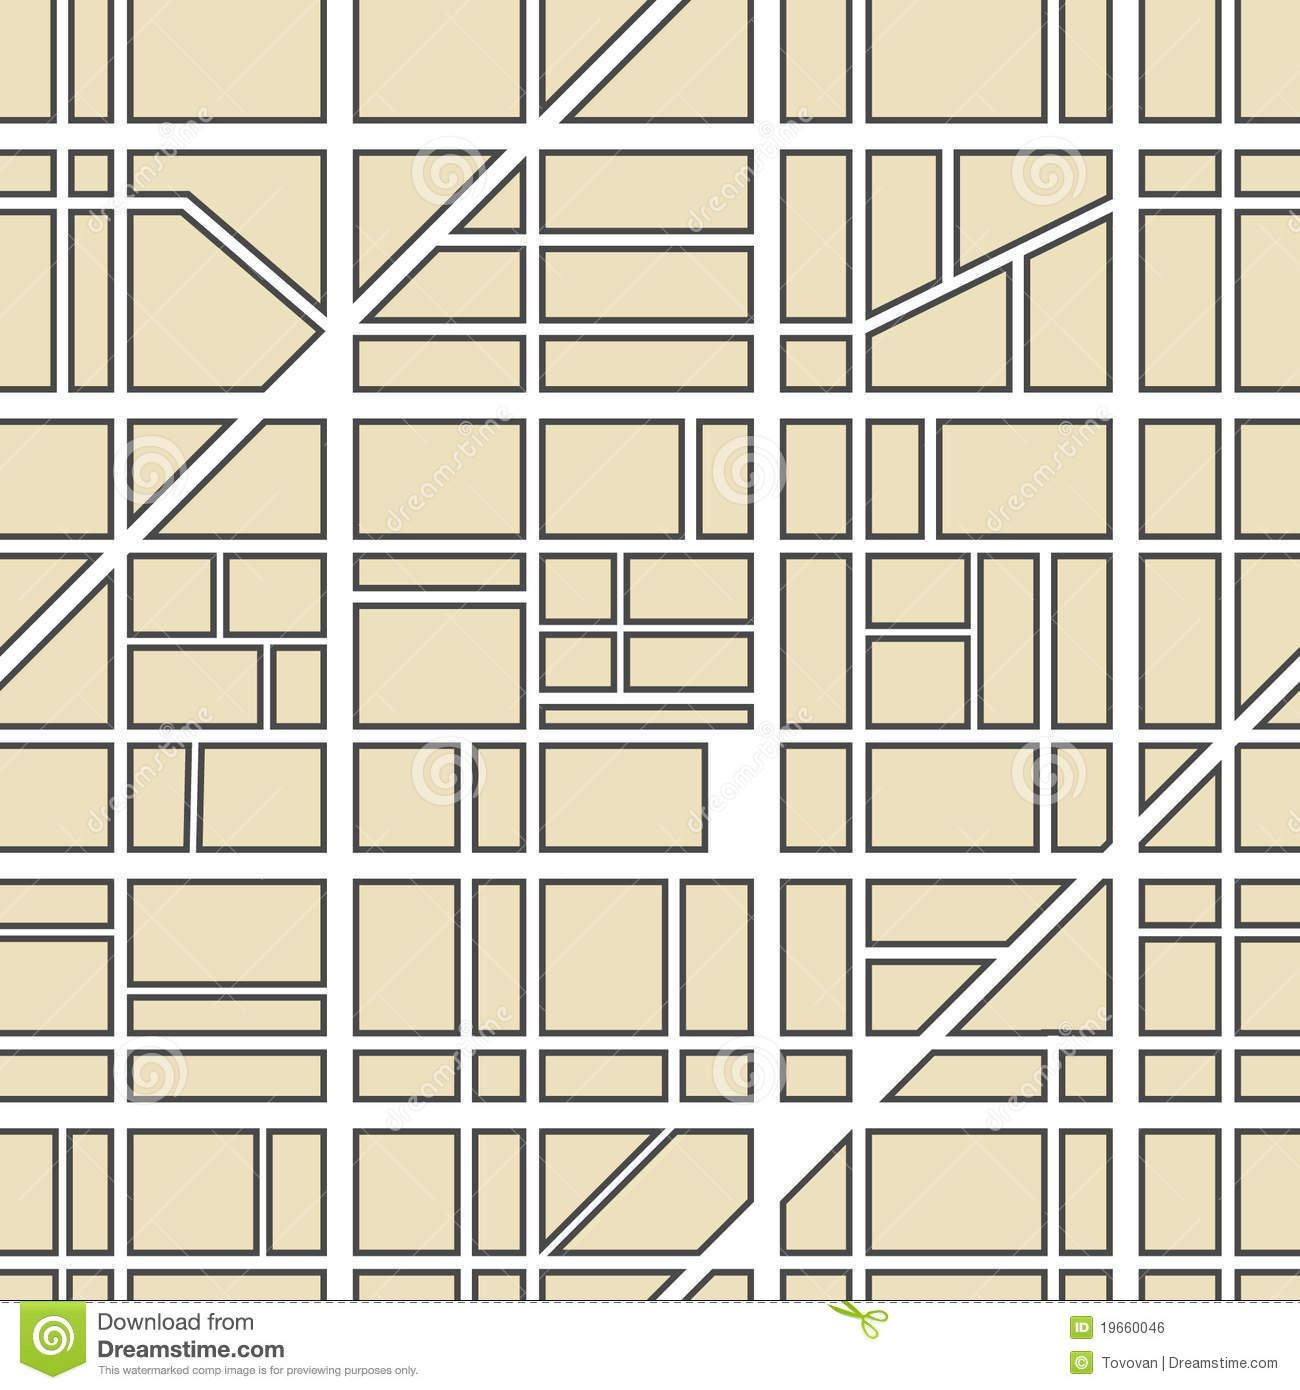 15158 Us Map Free Clipart 129 With Blank City Map Template In 2020 With Images Street Map